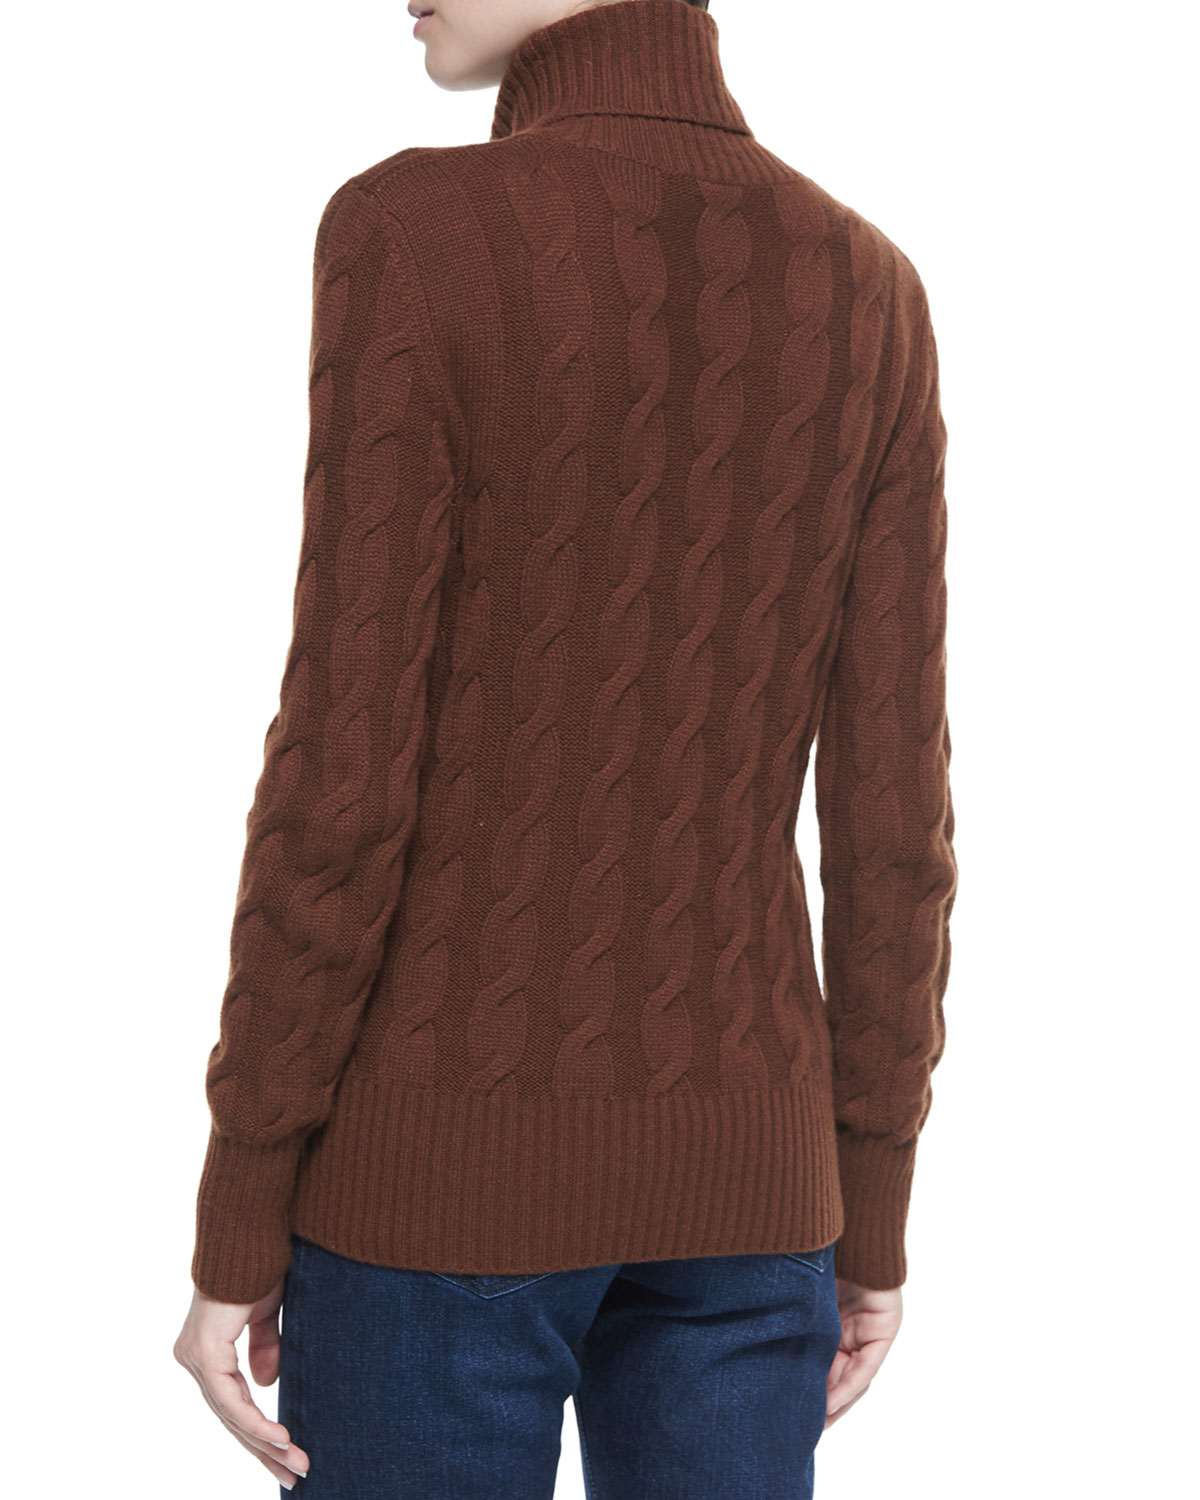 Loro piana Cashmere Cable Knit Turtleneck Sweater in Brown | Lyst